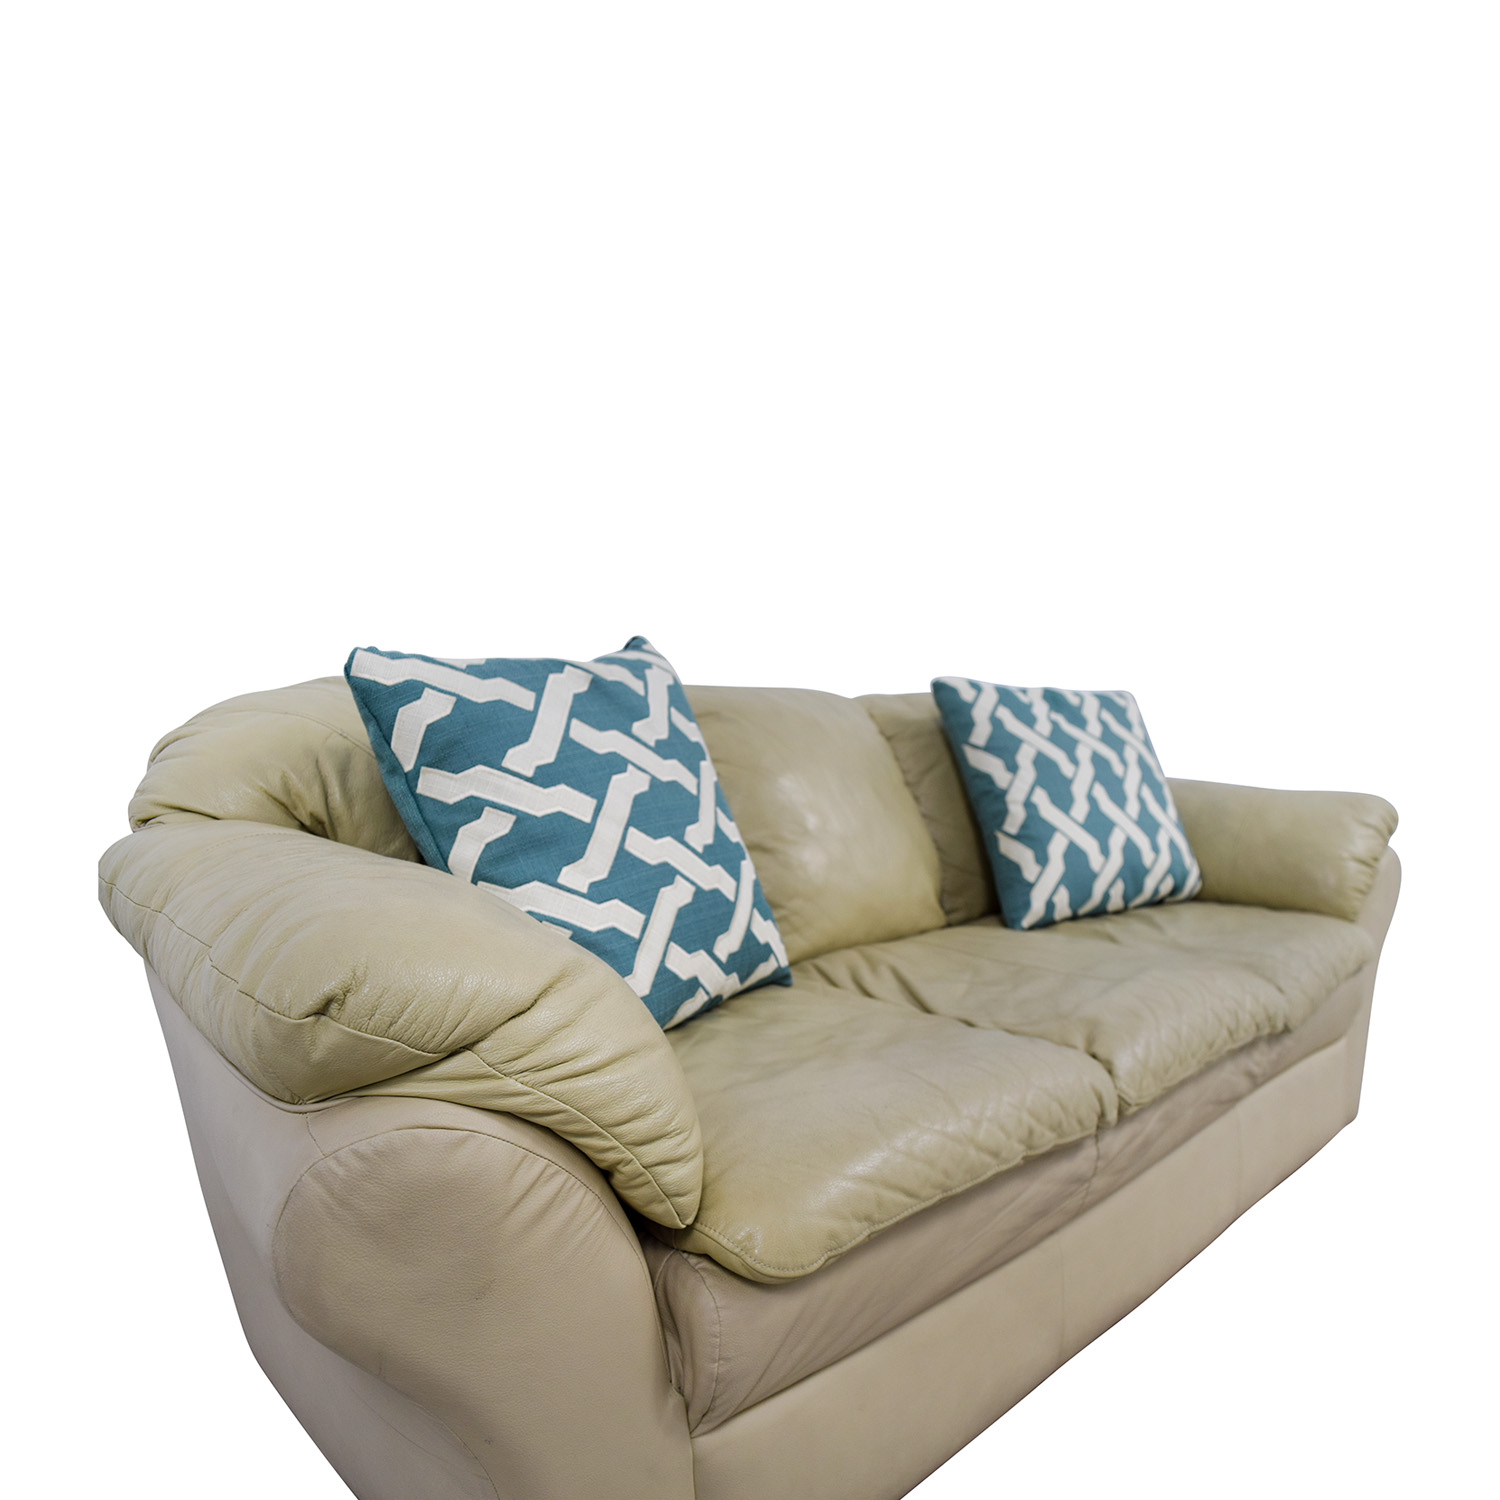 Mals Brooklyn Furniture Mals Brooklyn Furniture Beige Sofa coupon